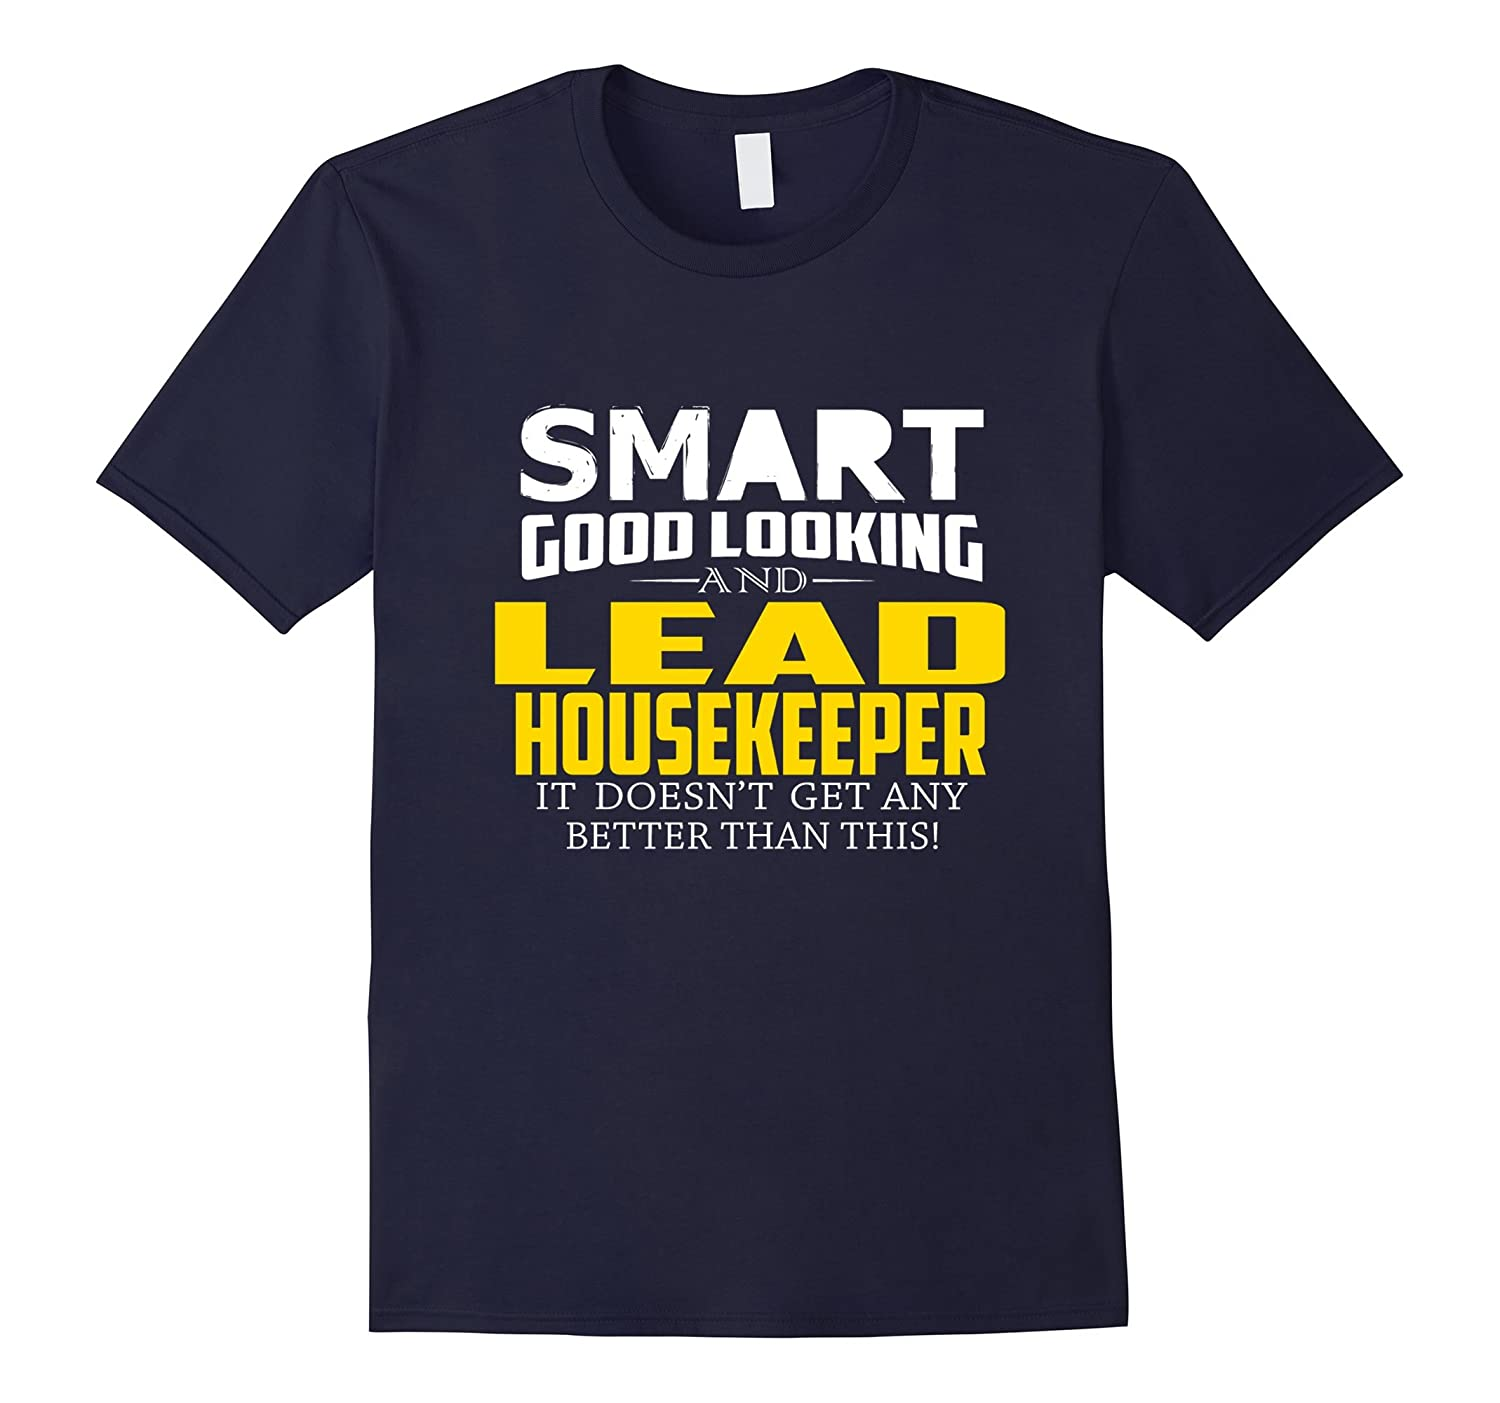 Smart Good Looking LEAD HOUSEKEEPER Get Better Than This-PL